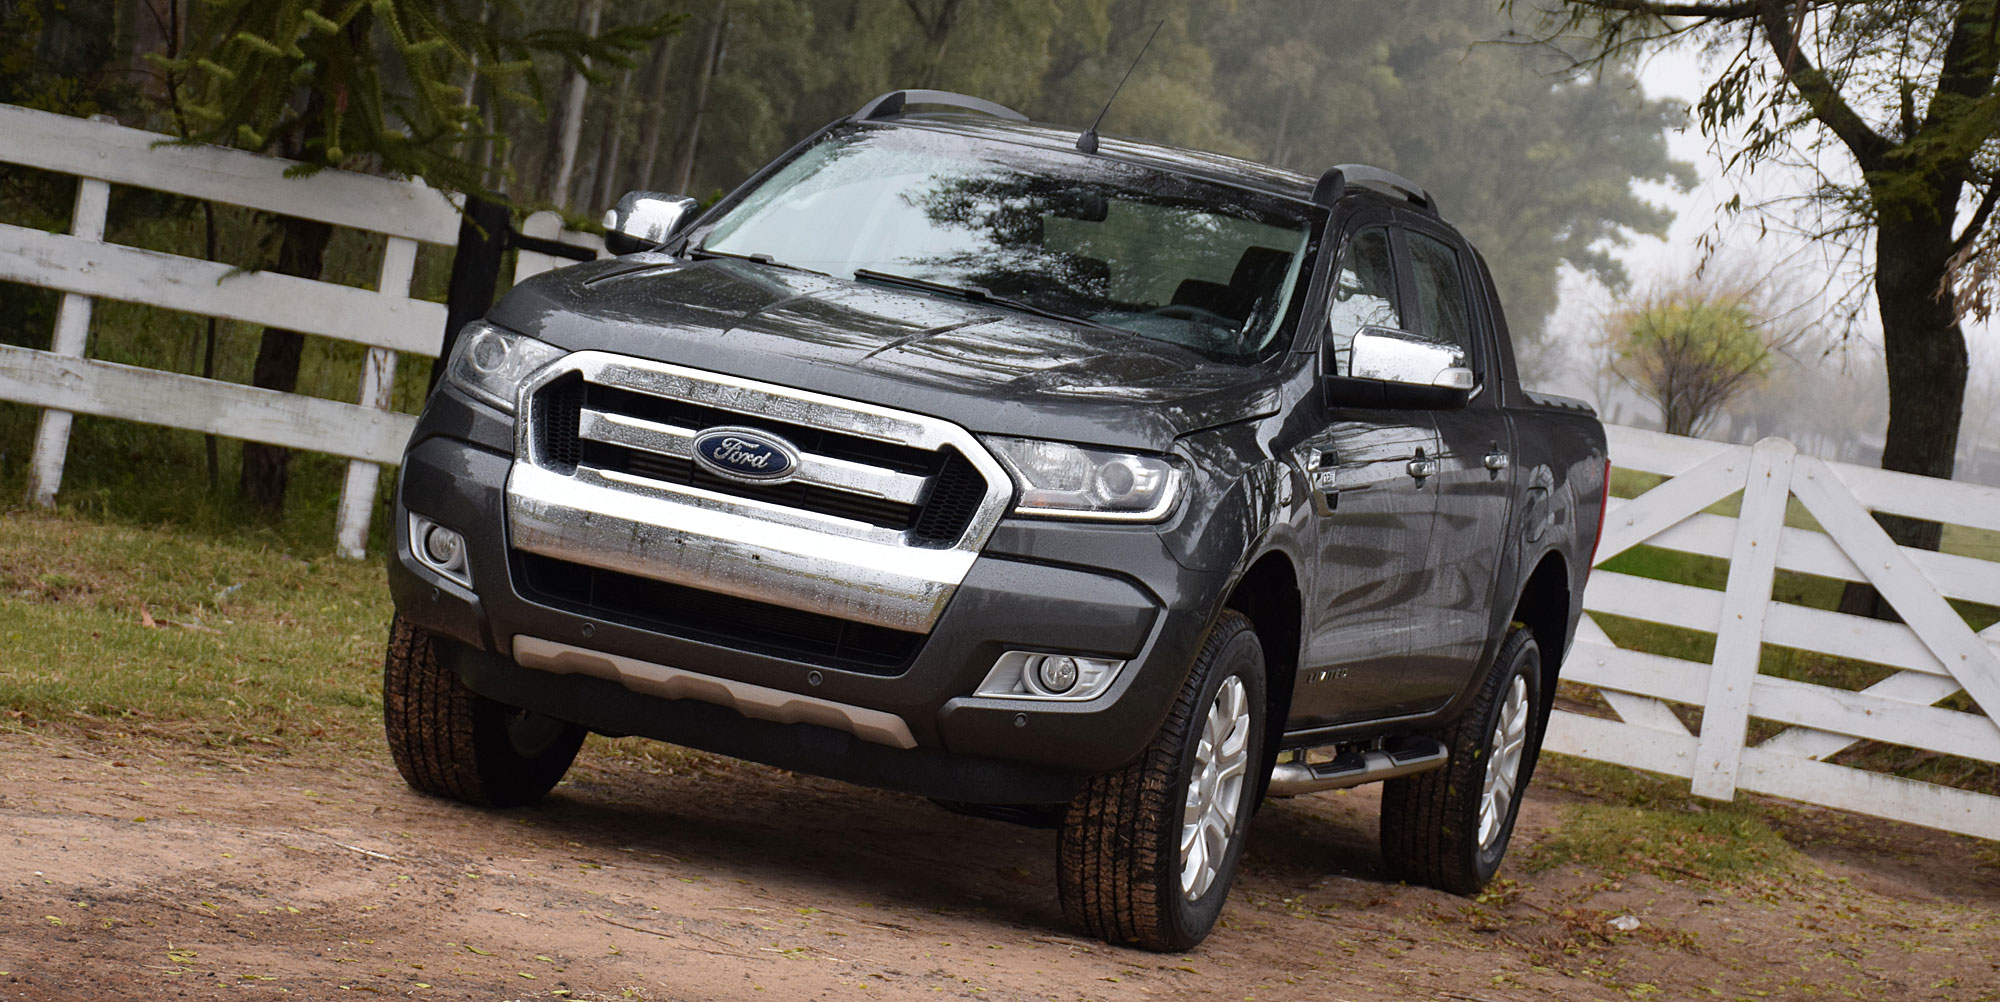 prueba nueva ford ranger limited 4 4 autom tica cajas autom ticas zanese. Black Bedroom Furniture Sets. Home Design Ideas